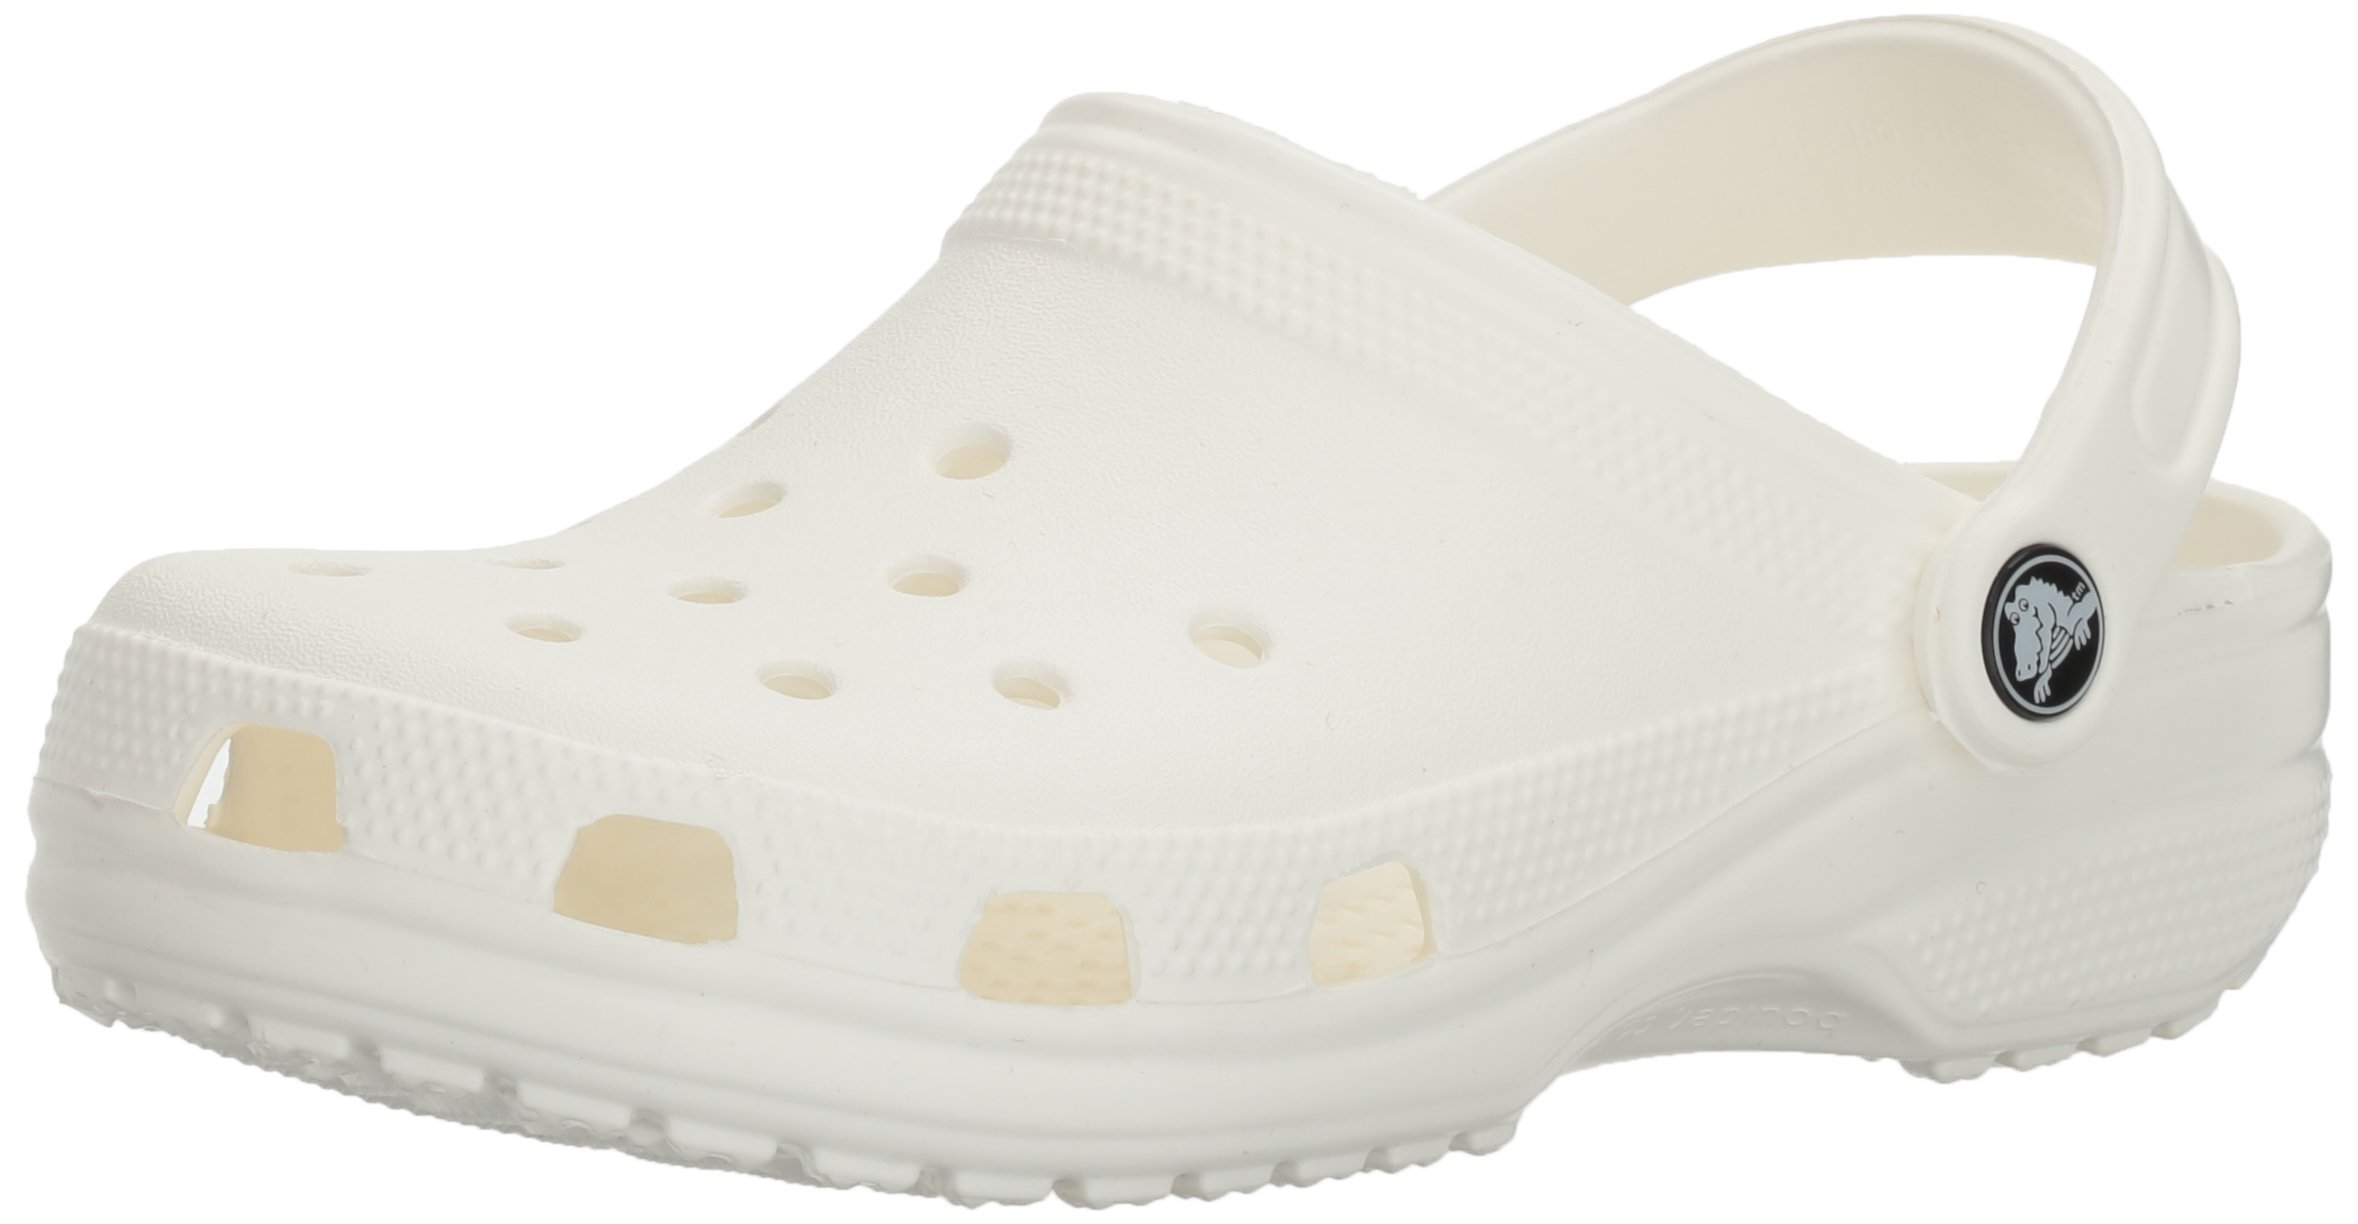 0d26a728e7507 Crocs Men's and Women's Classic Clog, Comfort Slip On Casual Water Shoe,  Lightweight, White, 7 US Women / 5 US Men